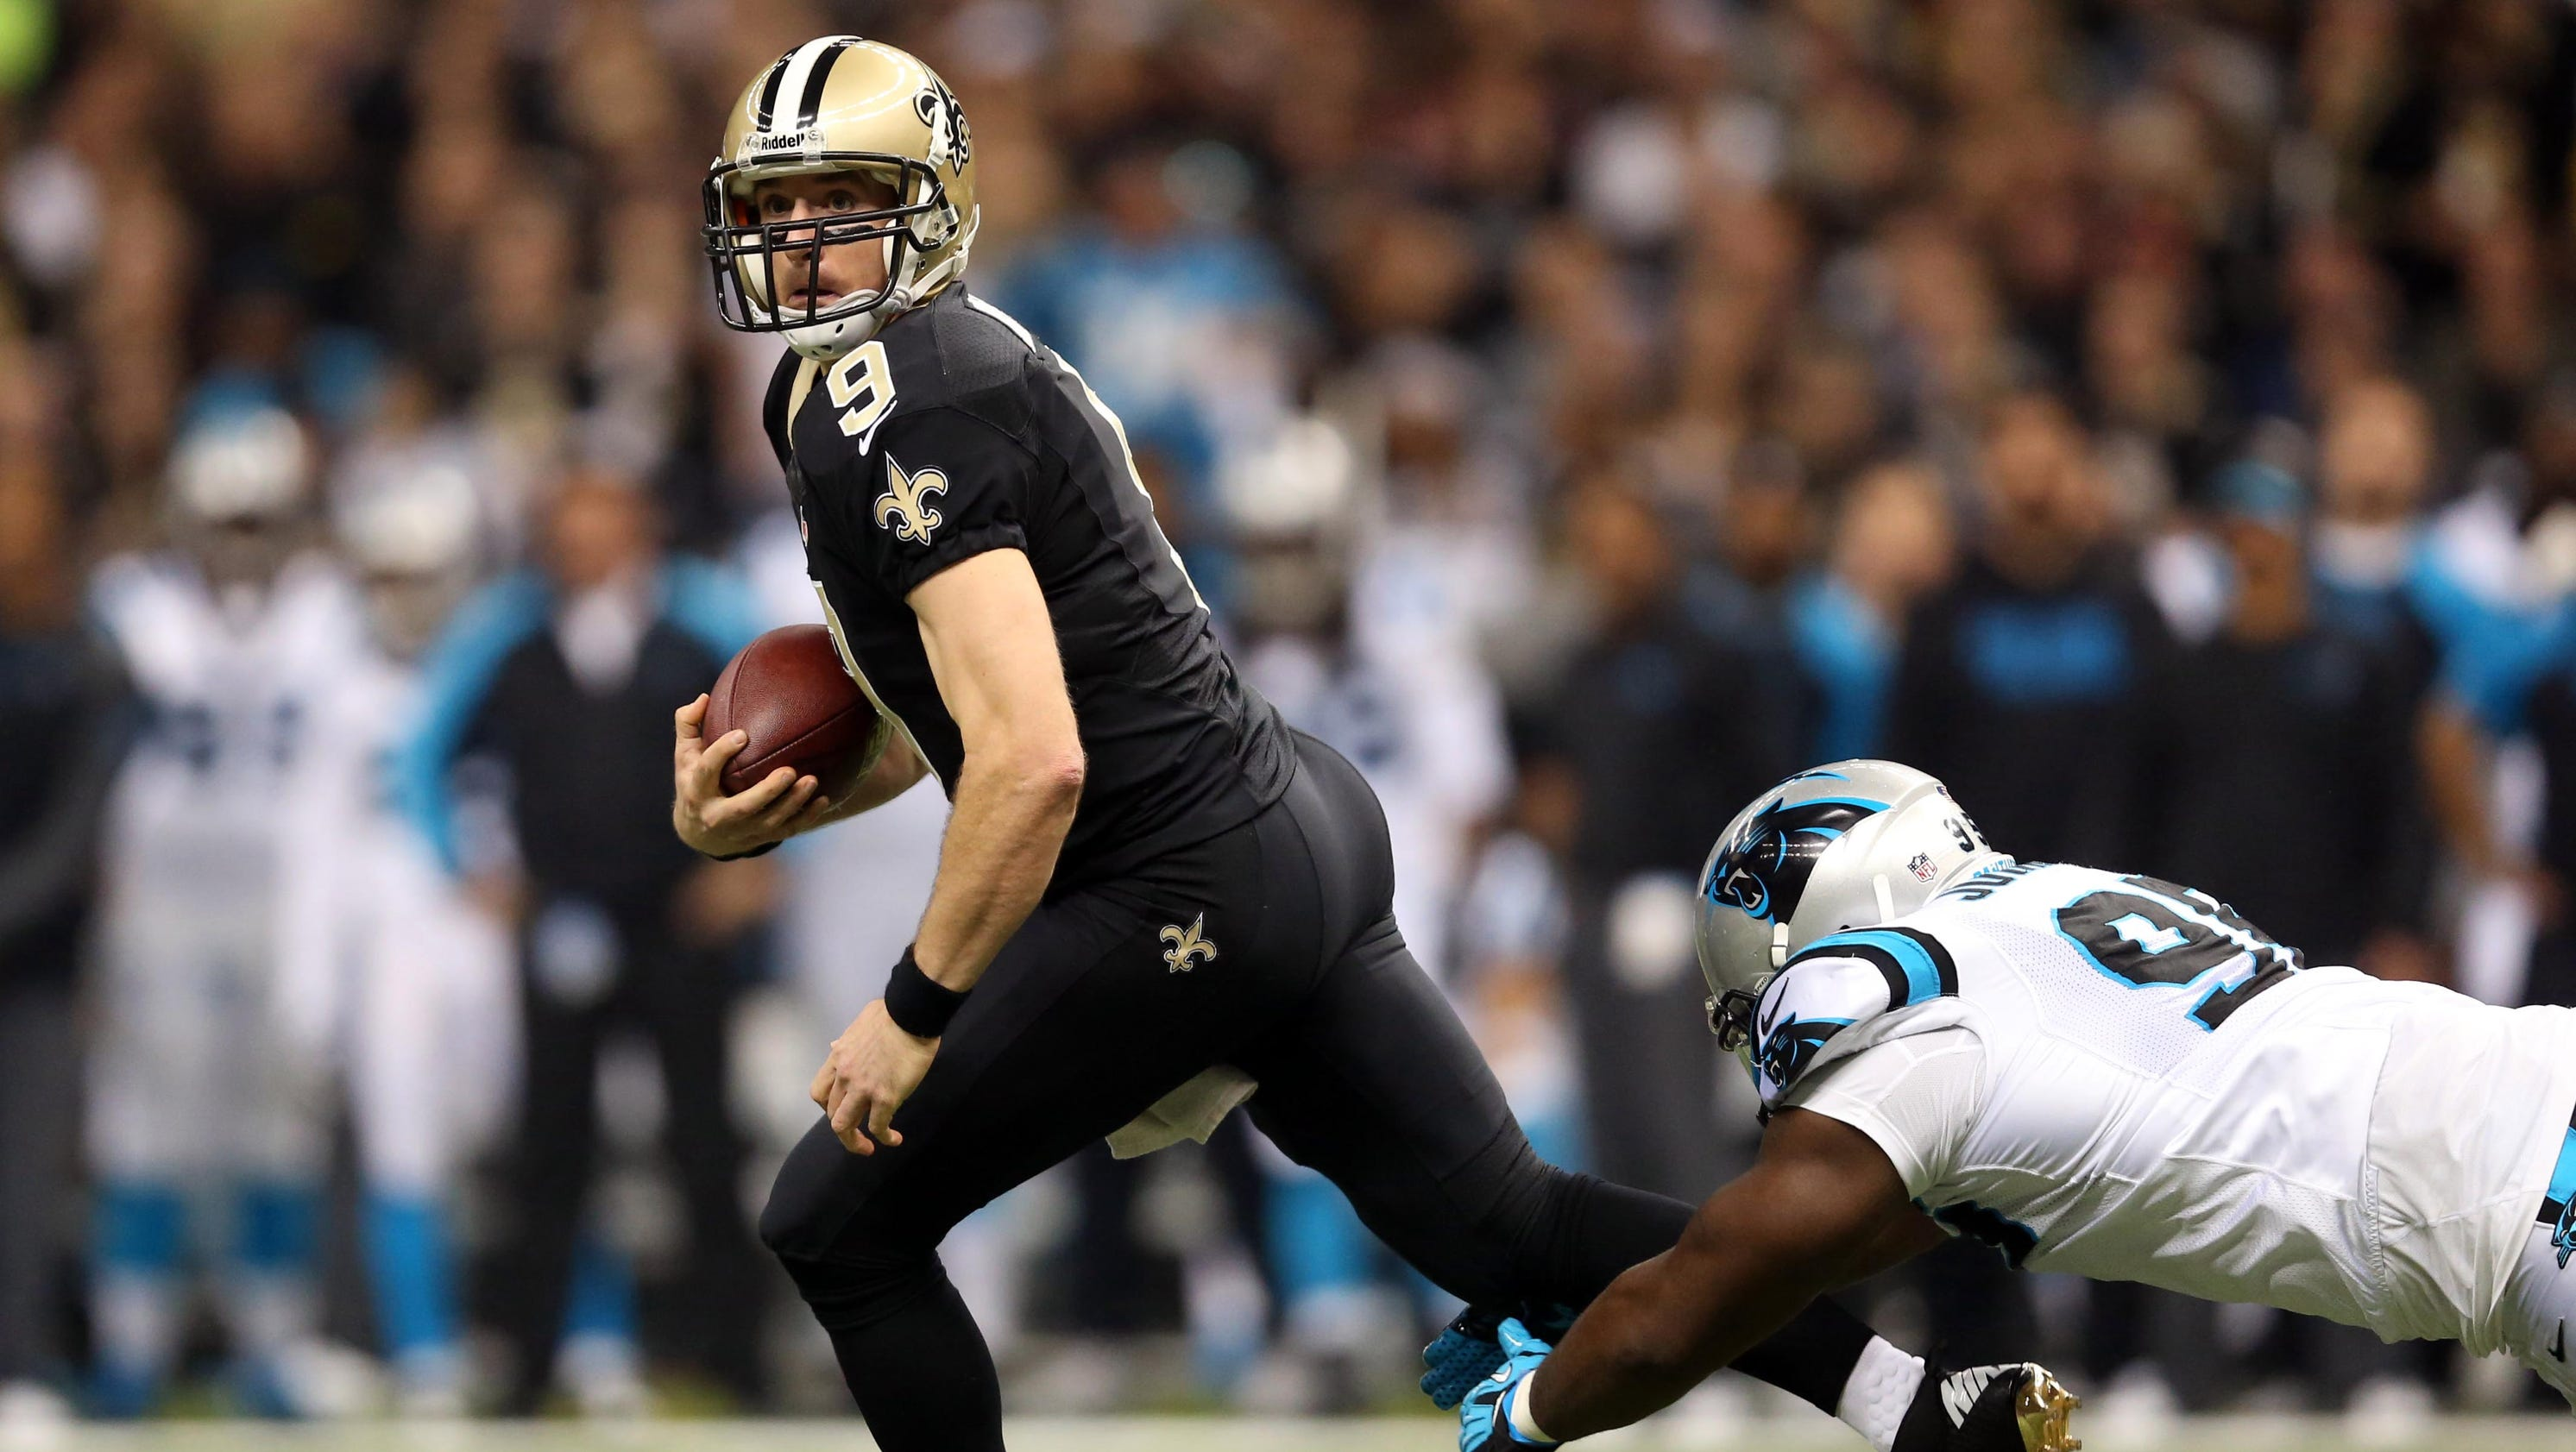 In Rematch Panthers Aim To Increase Pressure Drew Brees